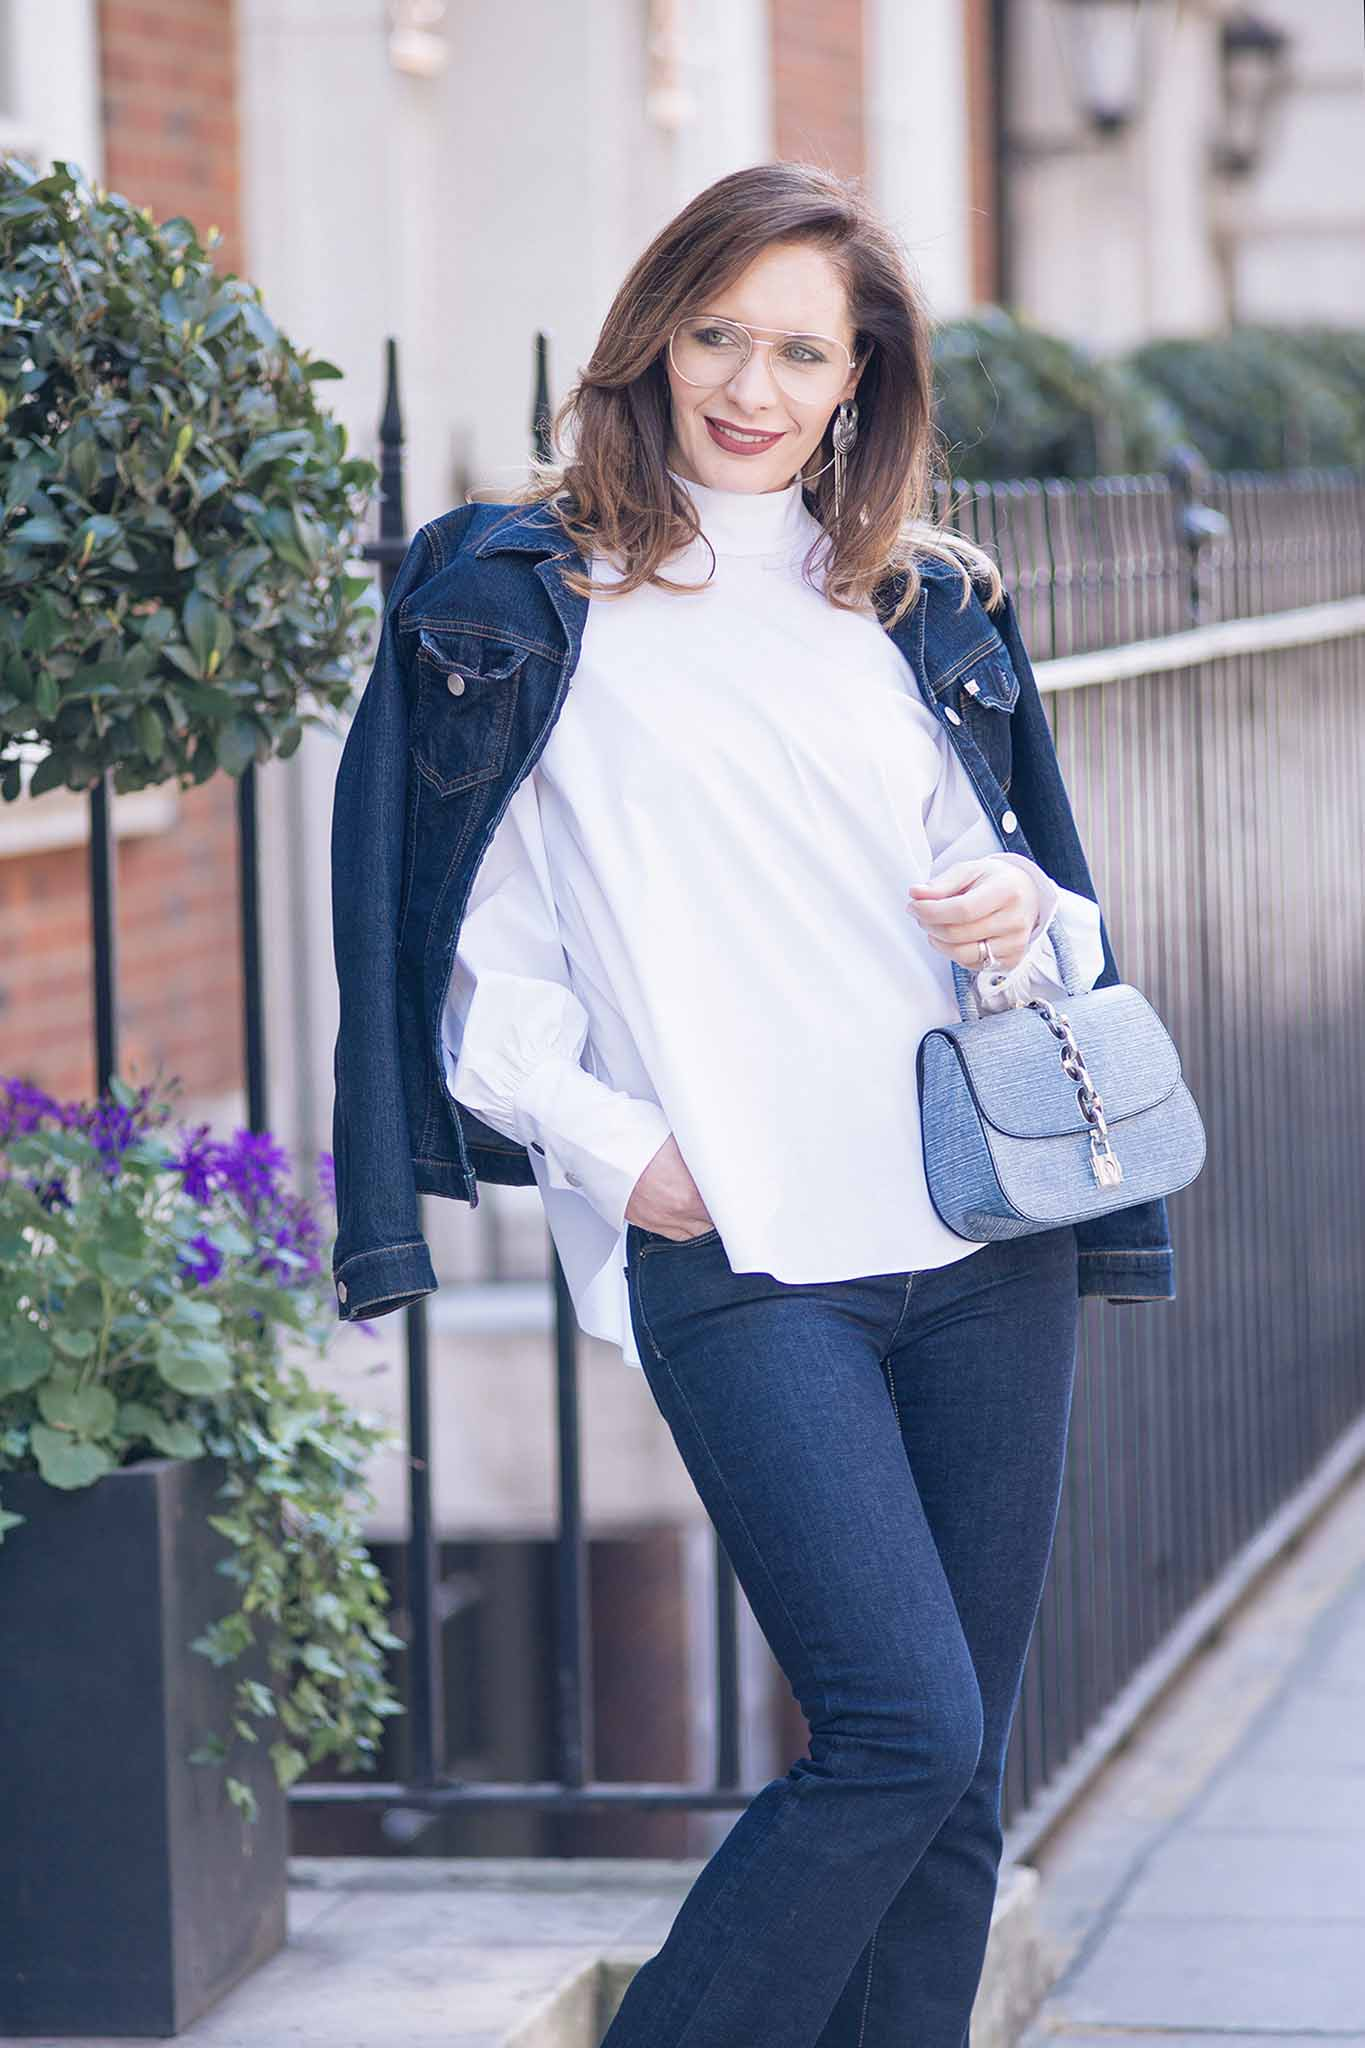 Chic Journal blogger Petra on how to wear double denim